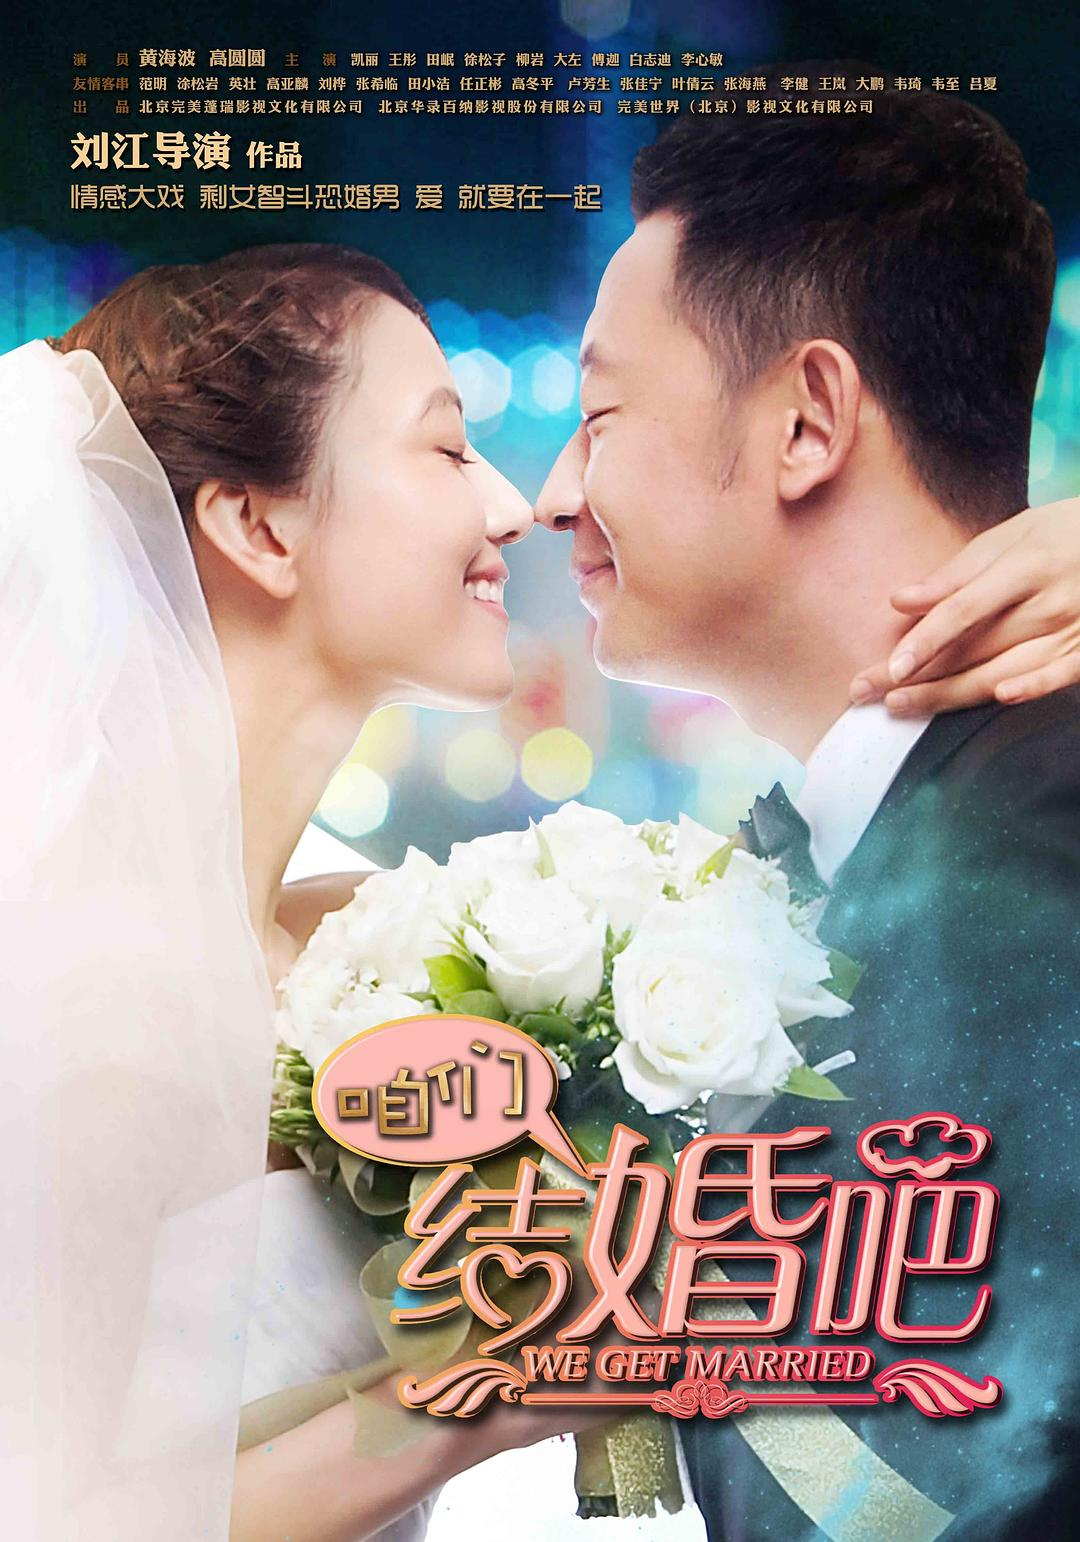 咱们结婚吧 全50集 We Get Married 2013 WEB-DL 1080p H264 AAC-HDSWEB